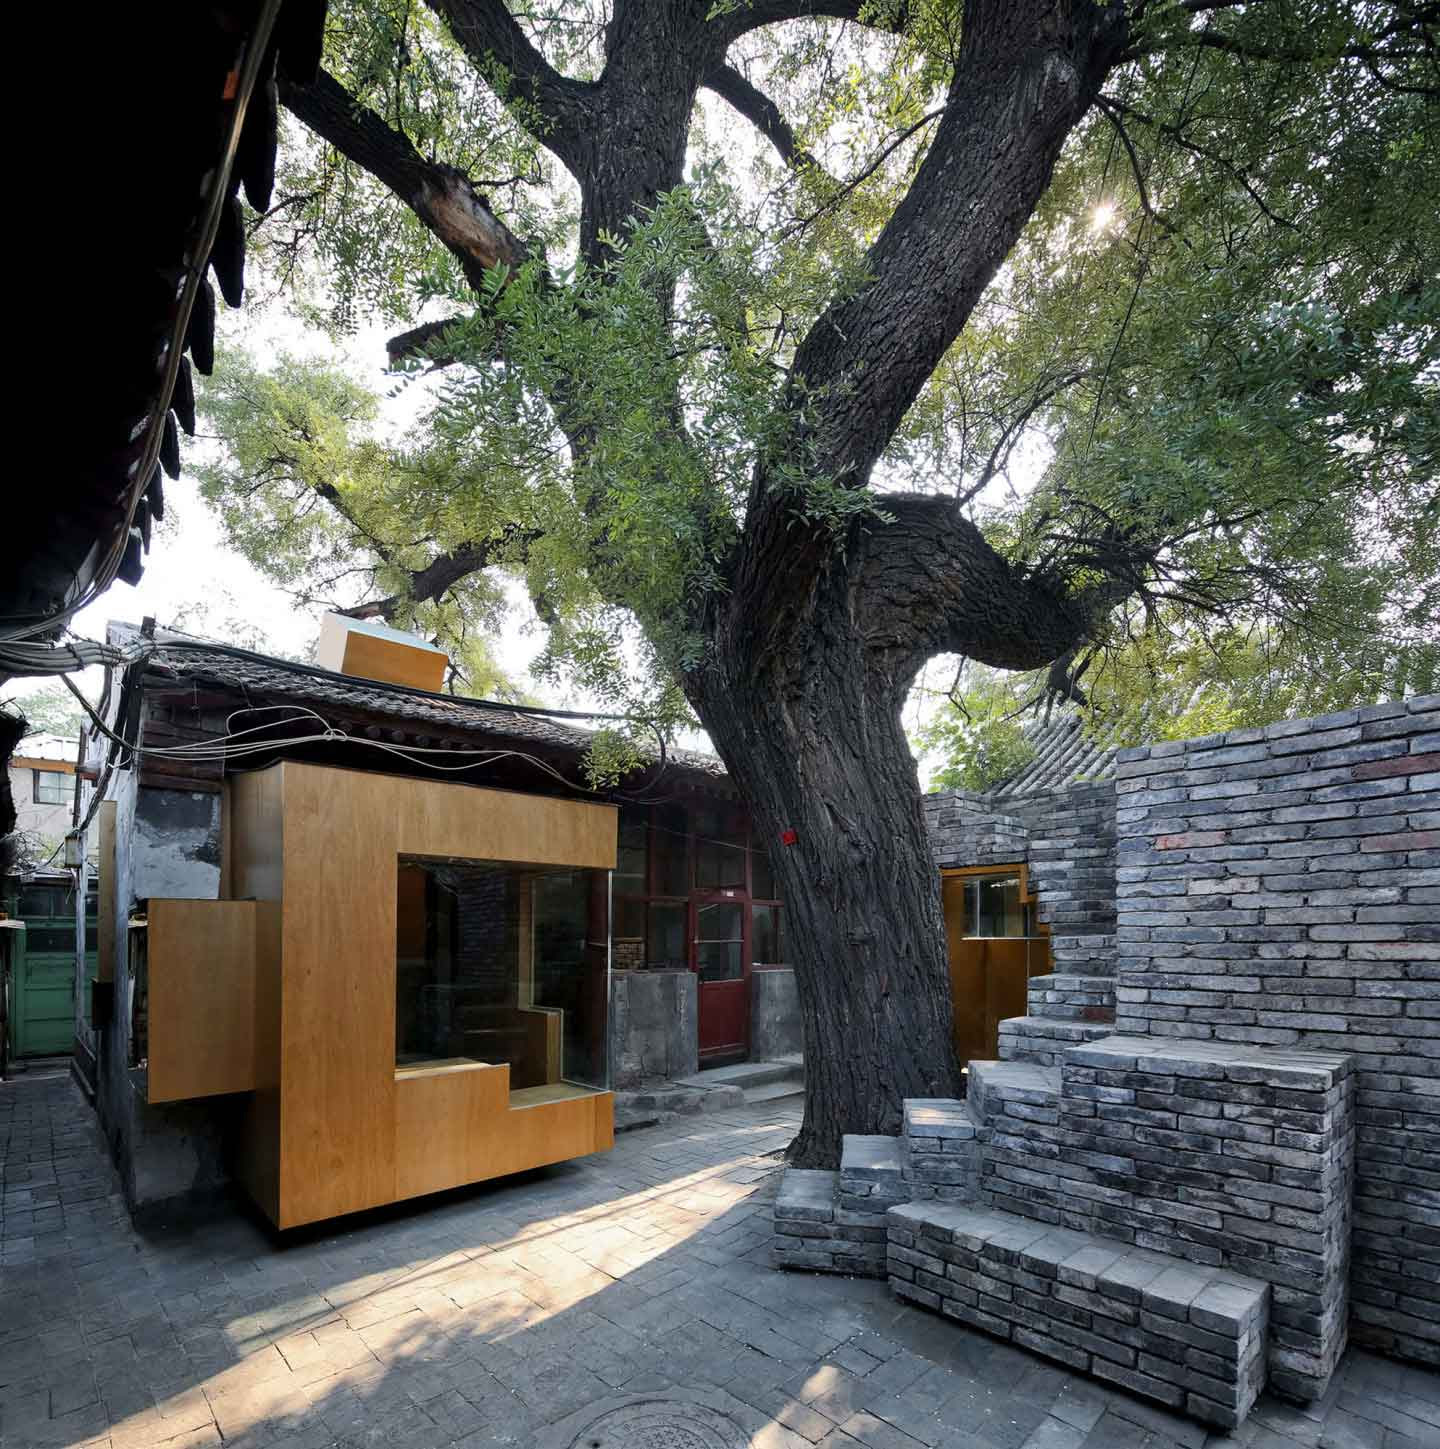 Micro-Housing: Hutong Experiments by Standardarchitecture. Photo by Chen Su | Yellowtrace